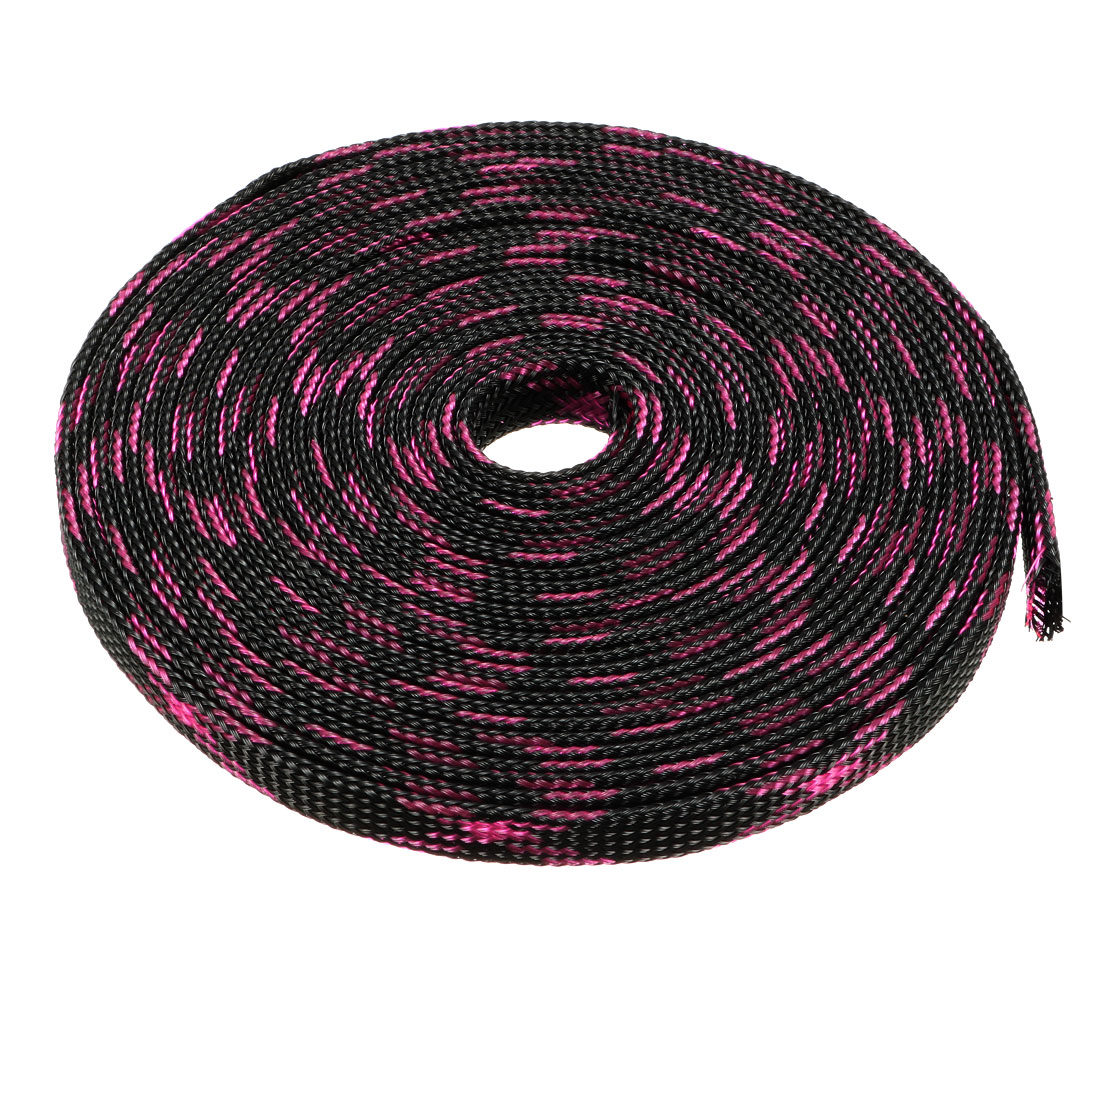 6mm Dia Tight Braided PET Expandable Sleeving Cable Wrap Sheath Black Pink 10M Length